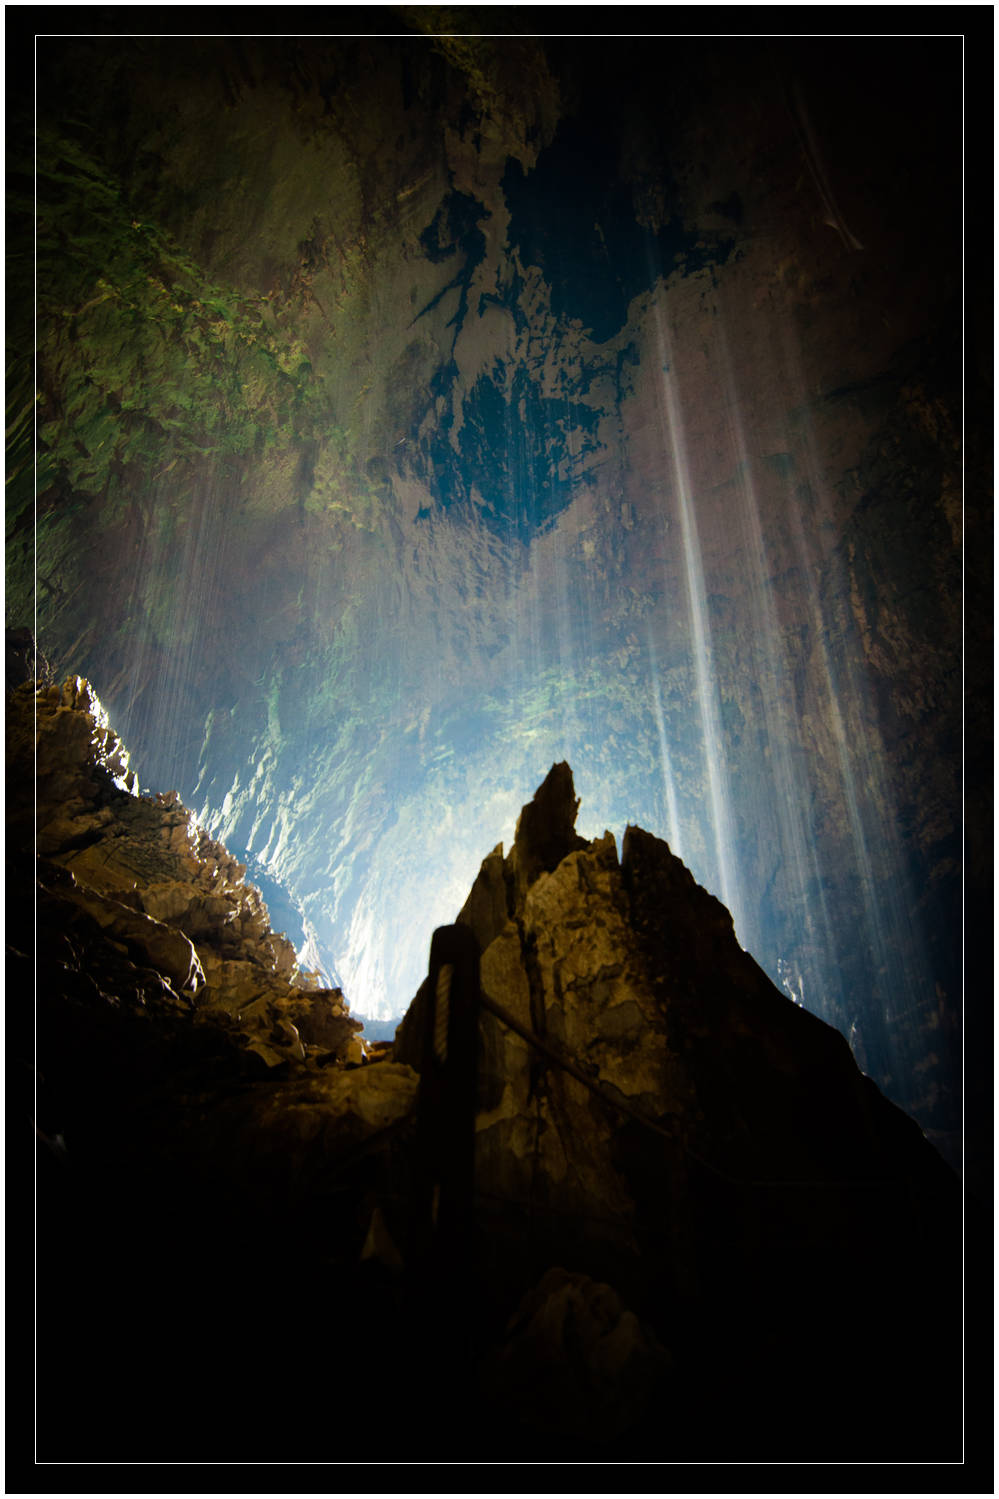 """Cave Waterfalls"" - Deer Cave, Mulu National Park, Sarawak"